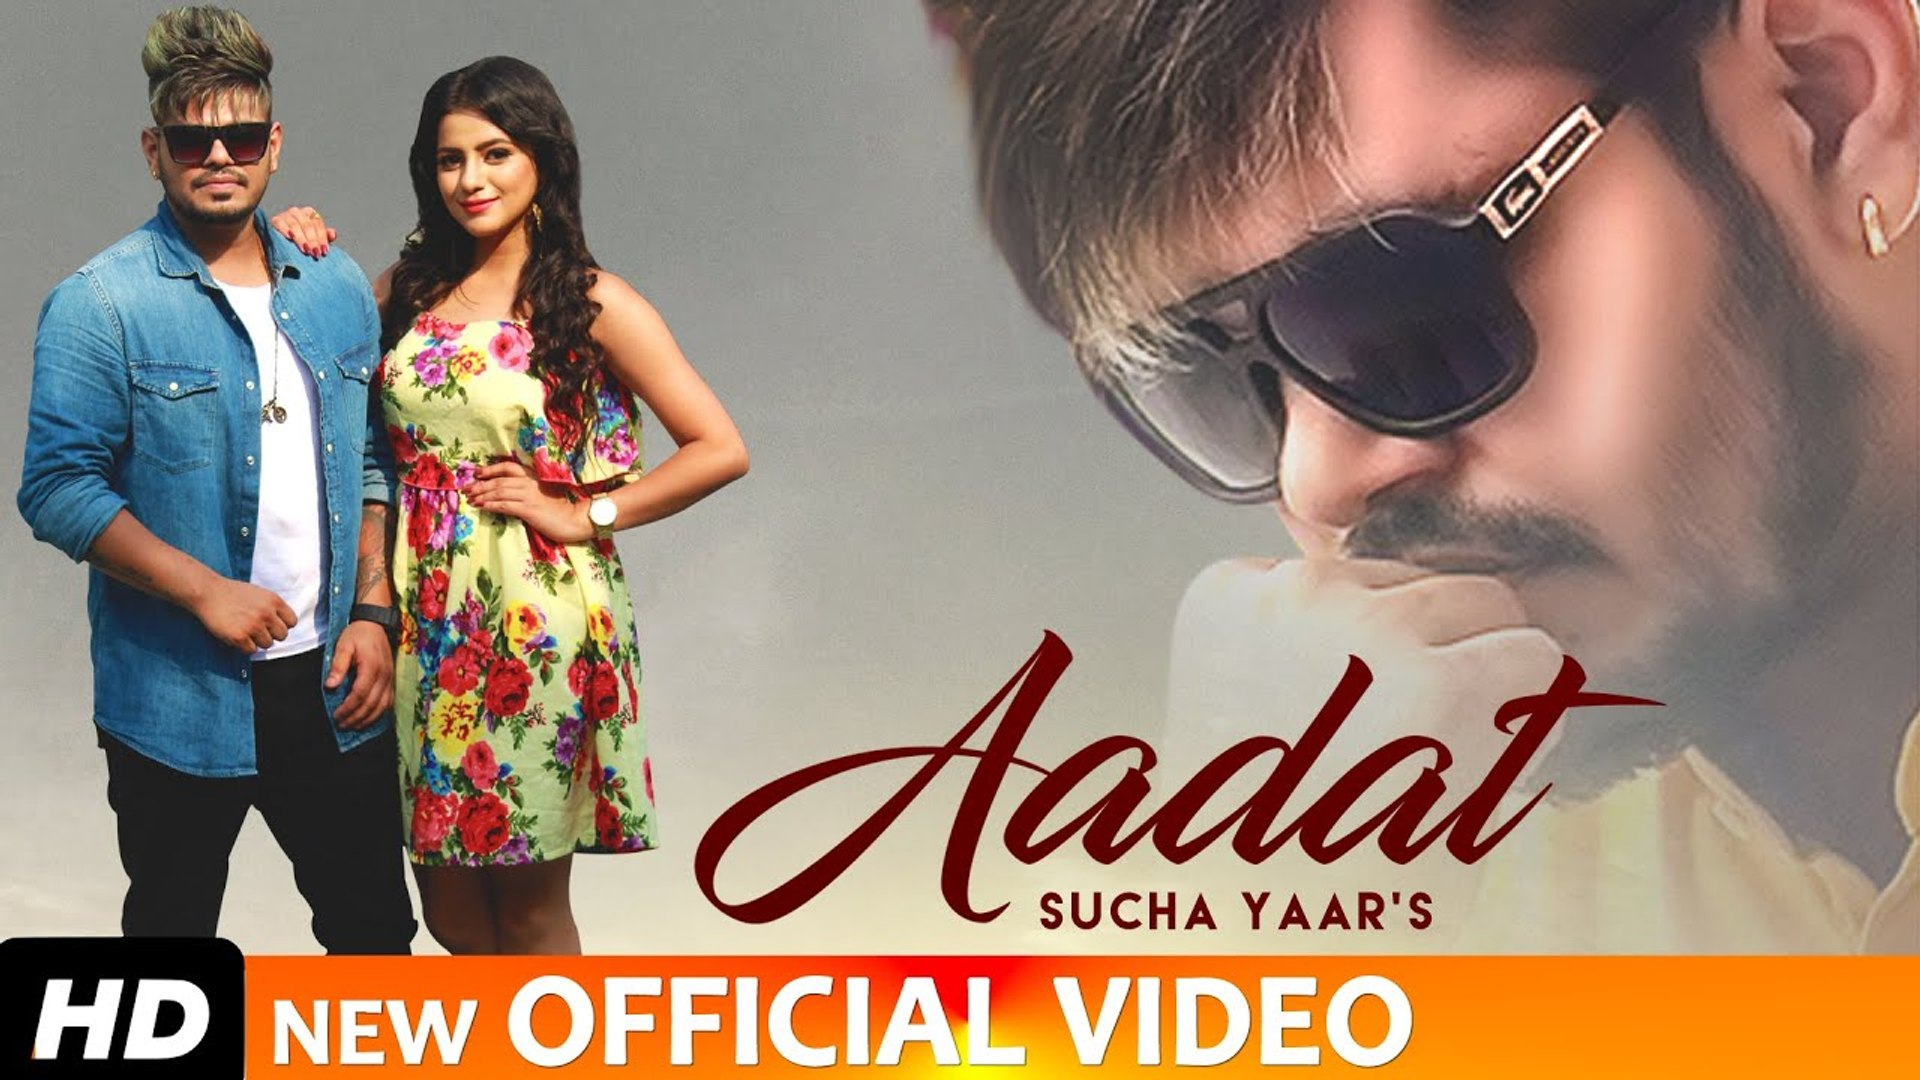 Aadat - Sucha Yaar | Latest Punjabi Songs 2019 | Full Punjabi Song Video | New  Punjabi Song 2019 - video dailymotion